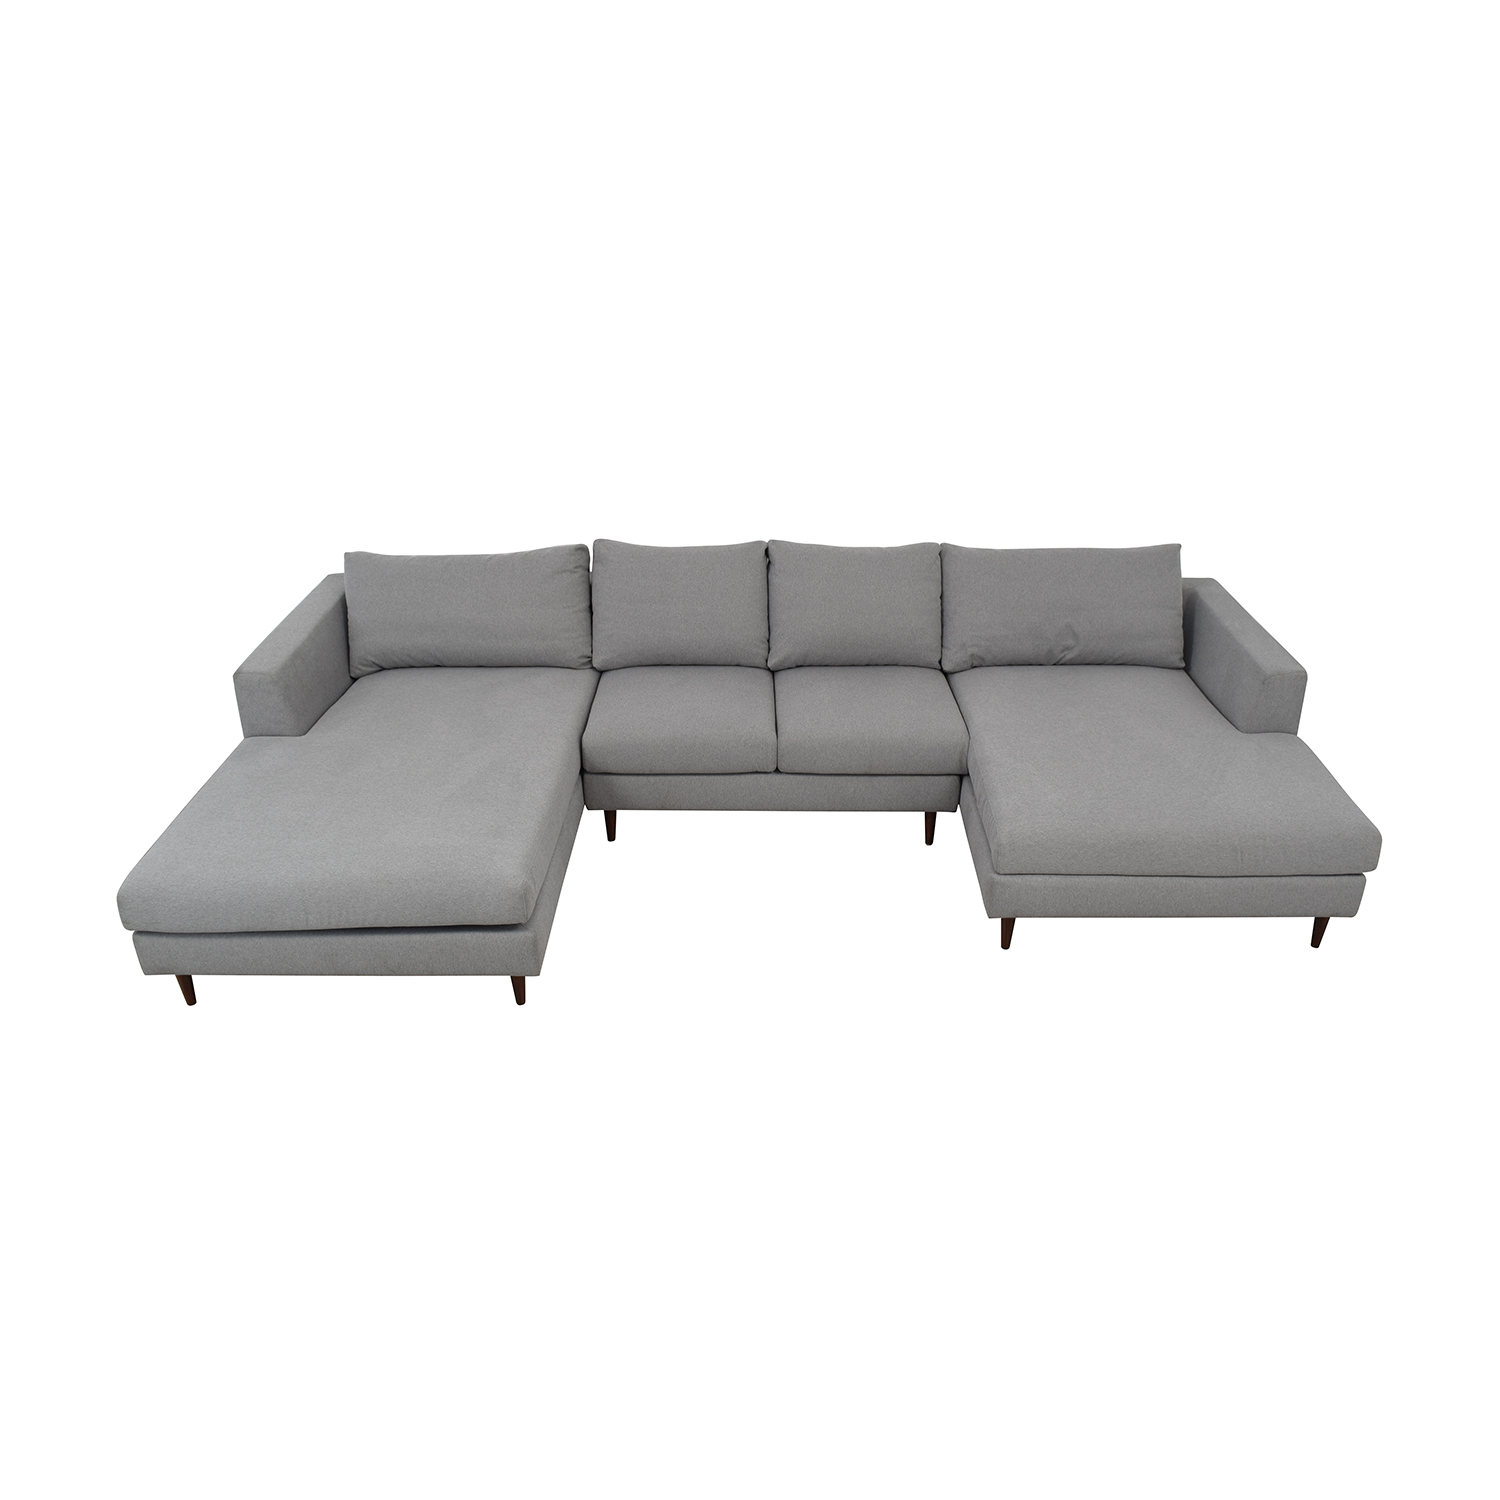 Asher Performance Felt Ash U-Shaped Double Chaise Sectional / Sectionals